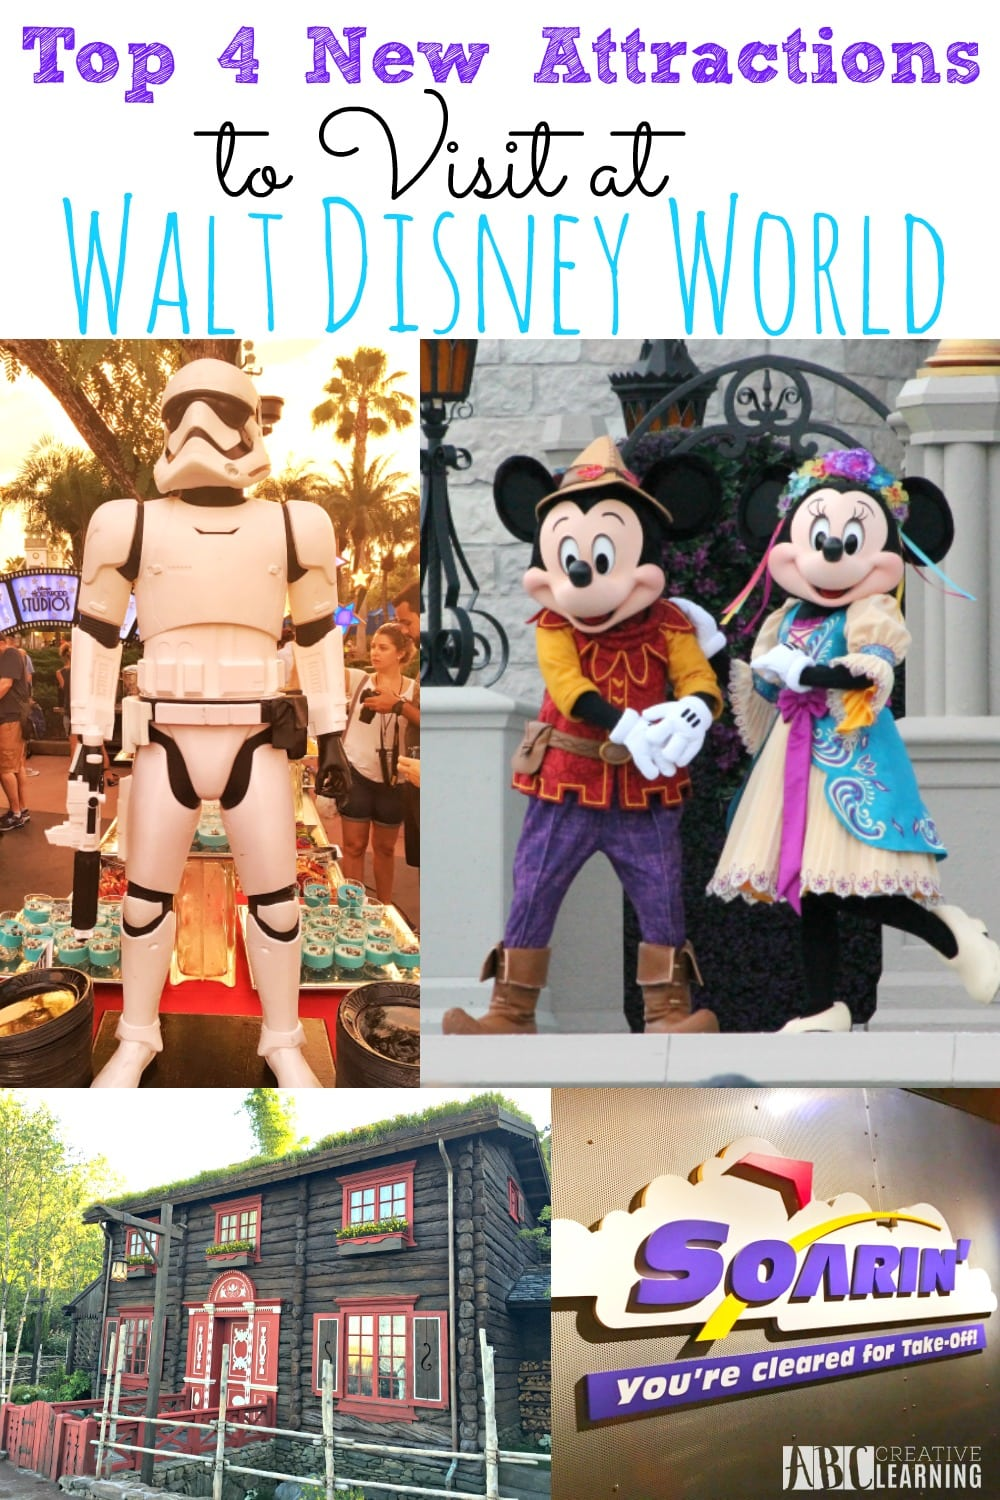 Toop 4 New Attractions To Visit at Walt Disney World Awaken Summer